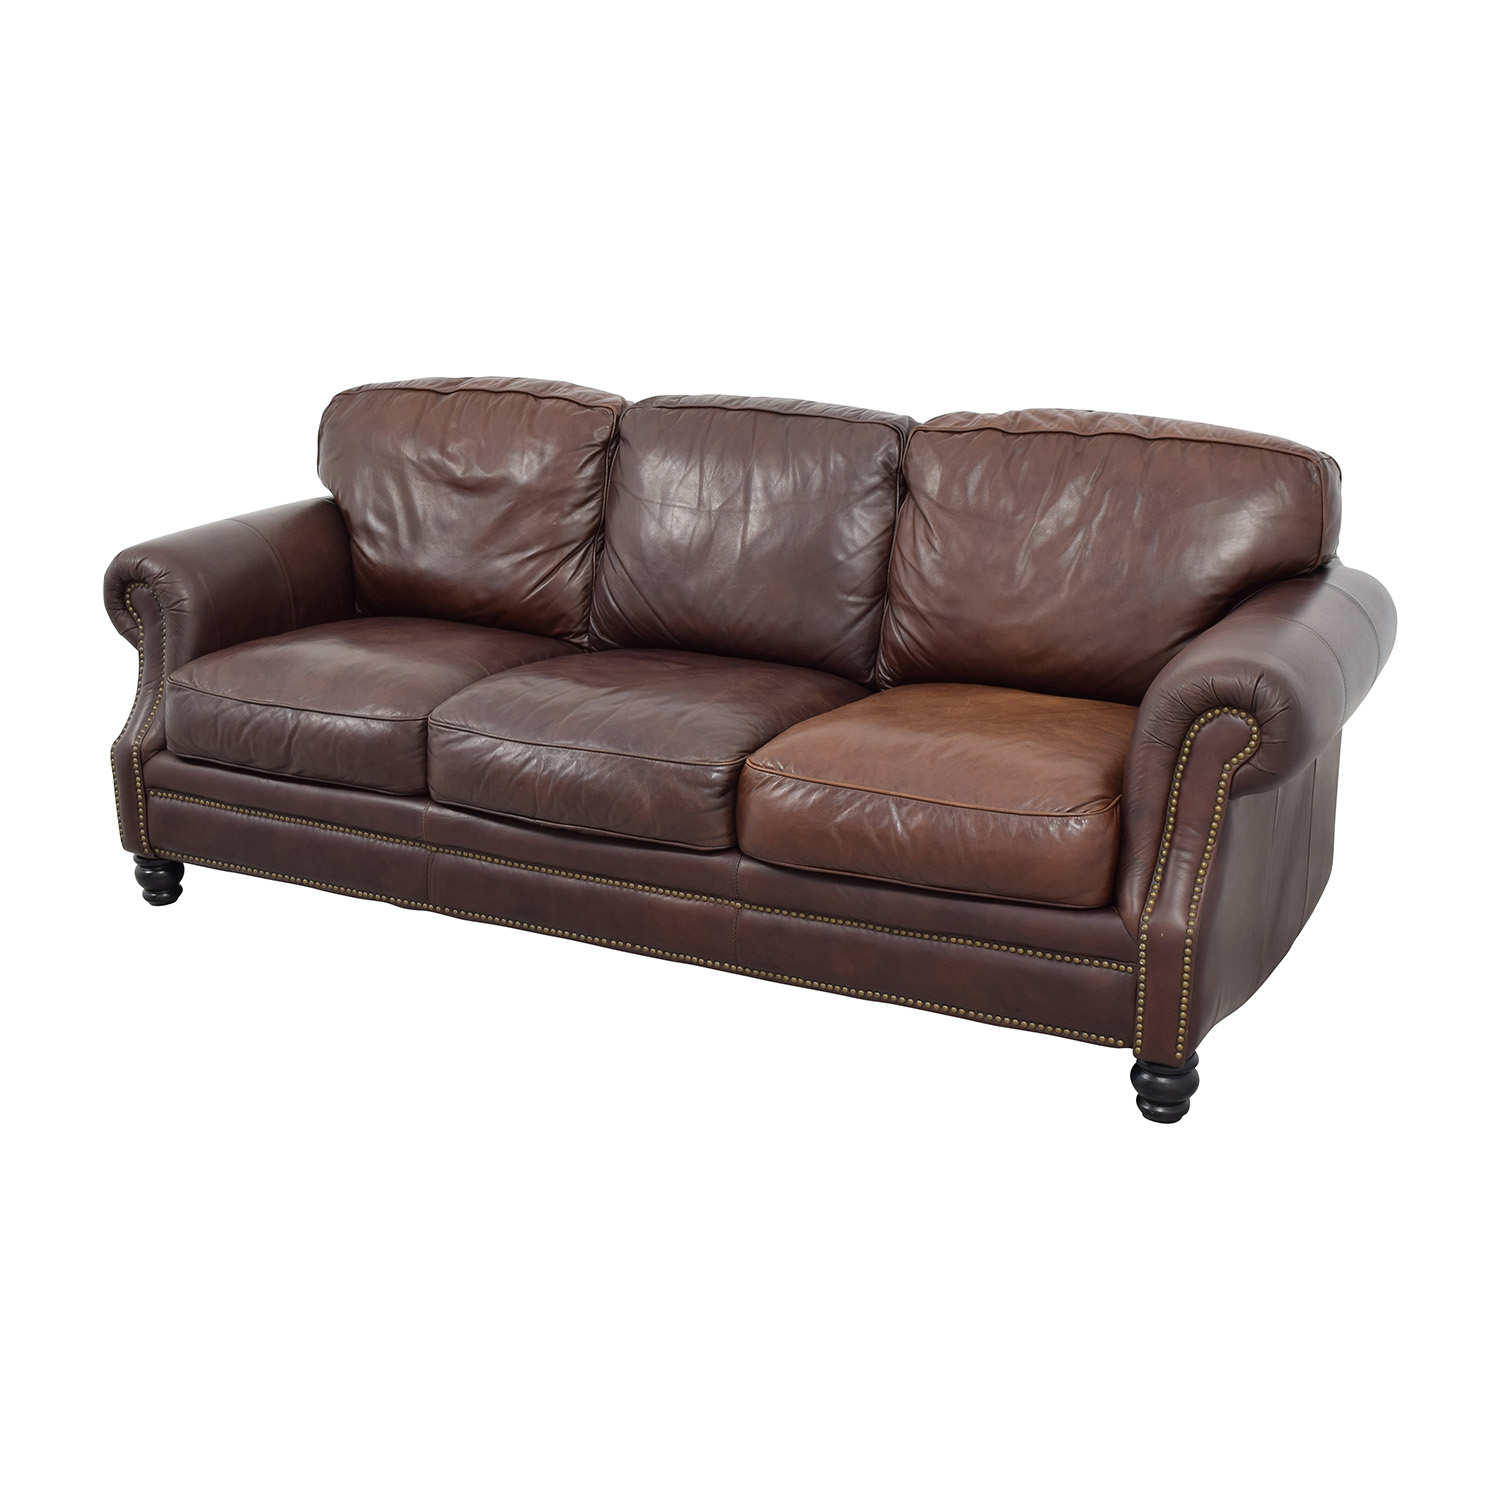 Cushions For Brown Leather Sofas Leather Studded Sofa Mesmerizing Leather Studded Sofa New